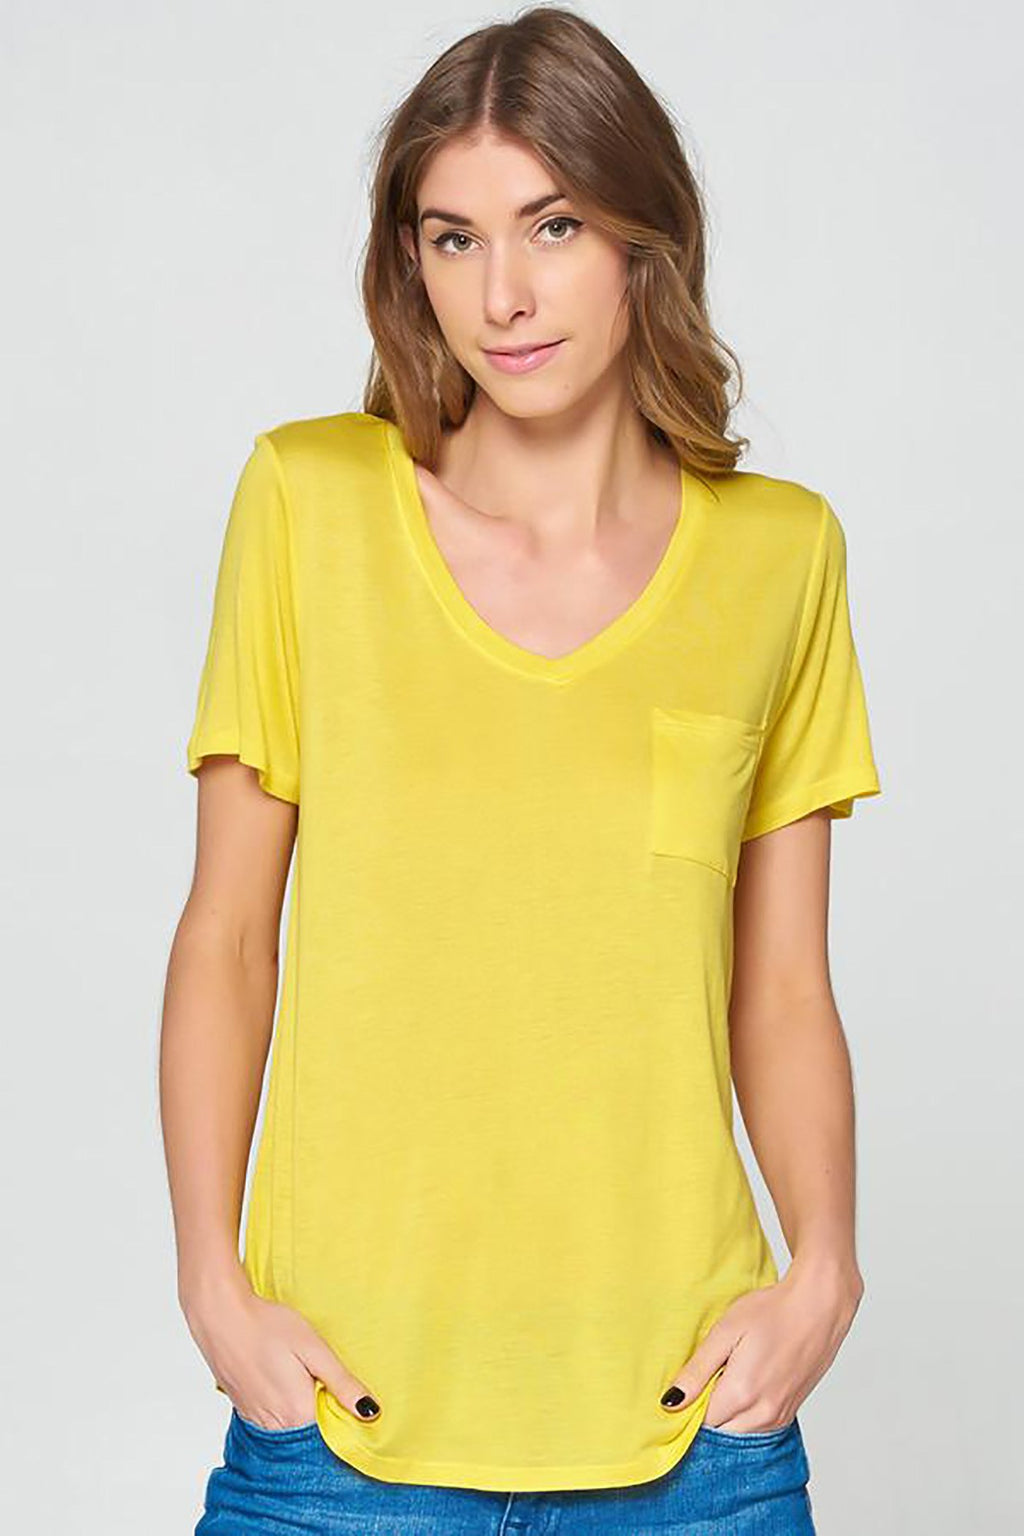 Velocity Boyfriend Tee_ Bright Yellow Clothing Fair Shade LLC SMALL Bright Yellow